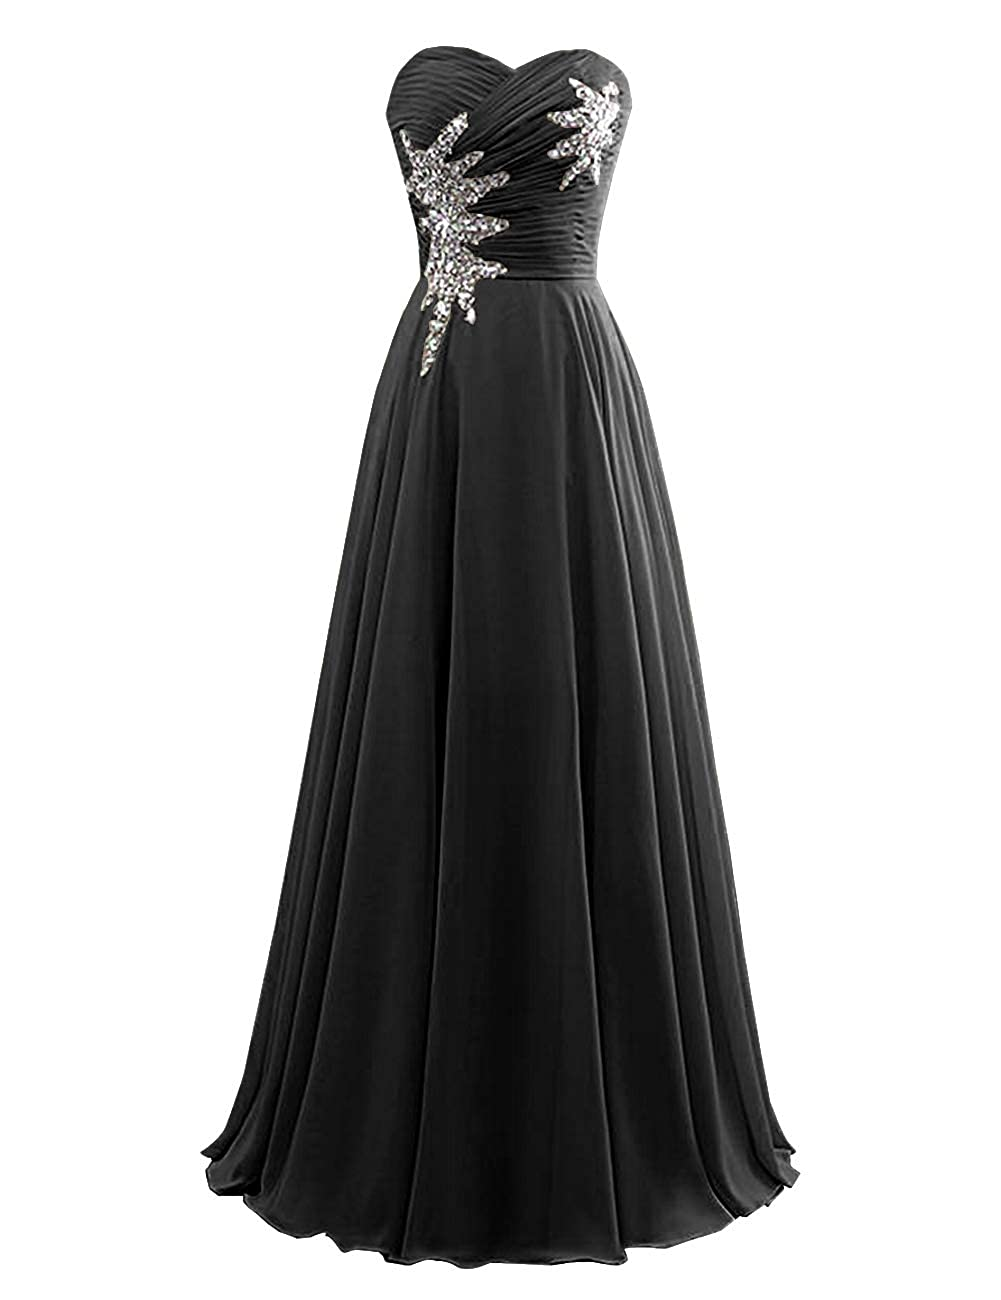 Black Women's Strapless Bridesmaid Dresses Beaded Prom Wedding Party Gowns